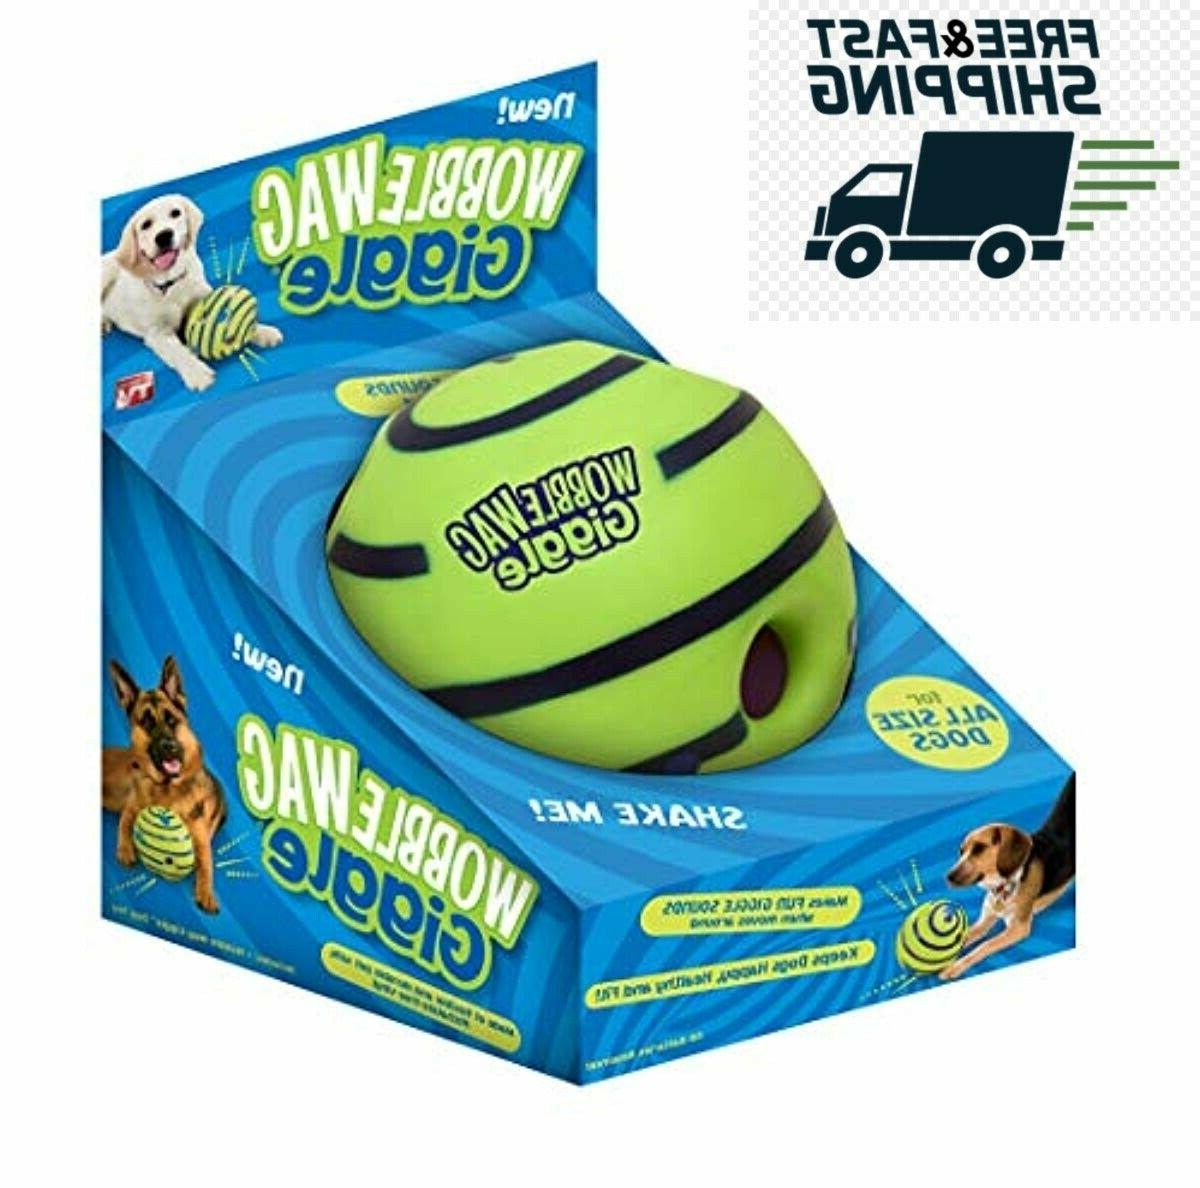 wobble wag giggle ball dog toy as